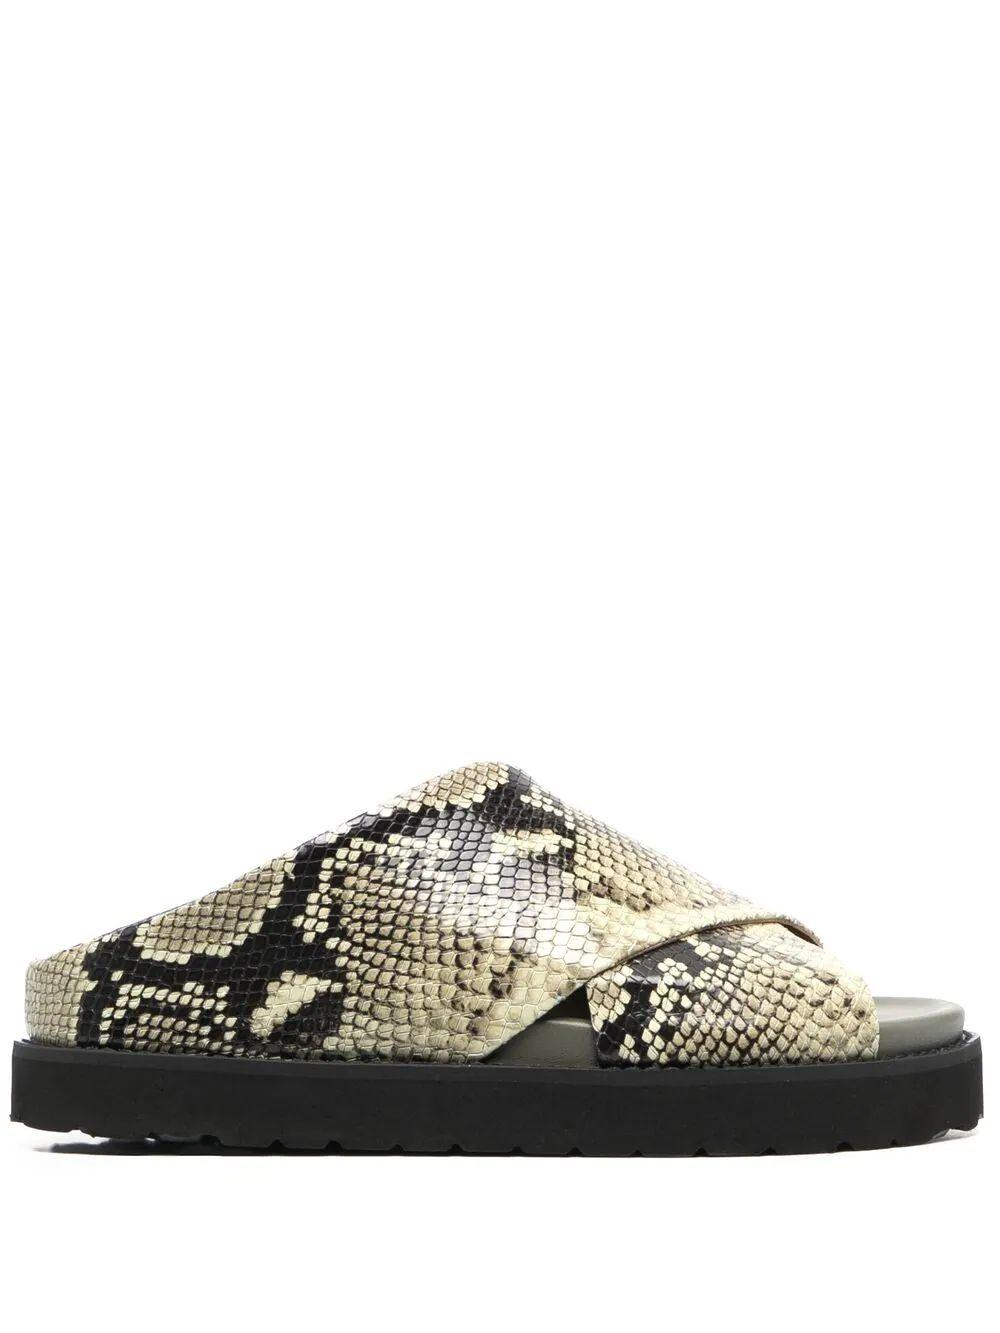 Embossed Snake Slide Sandal